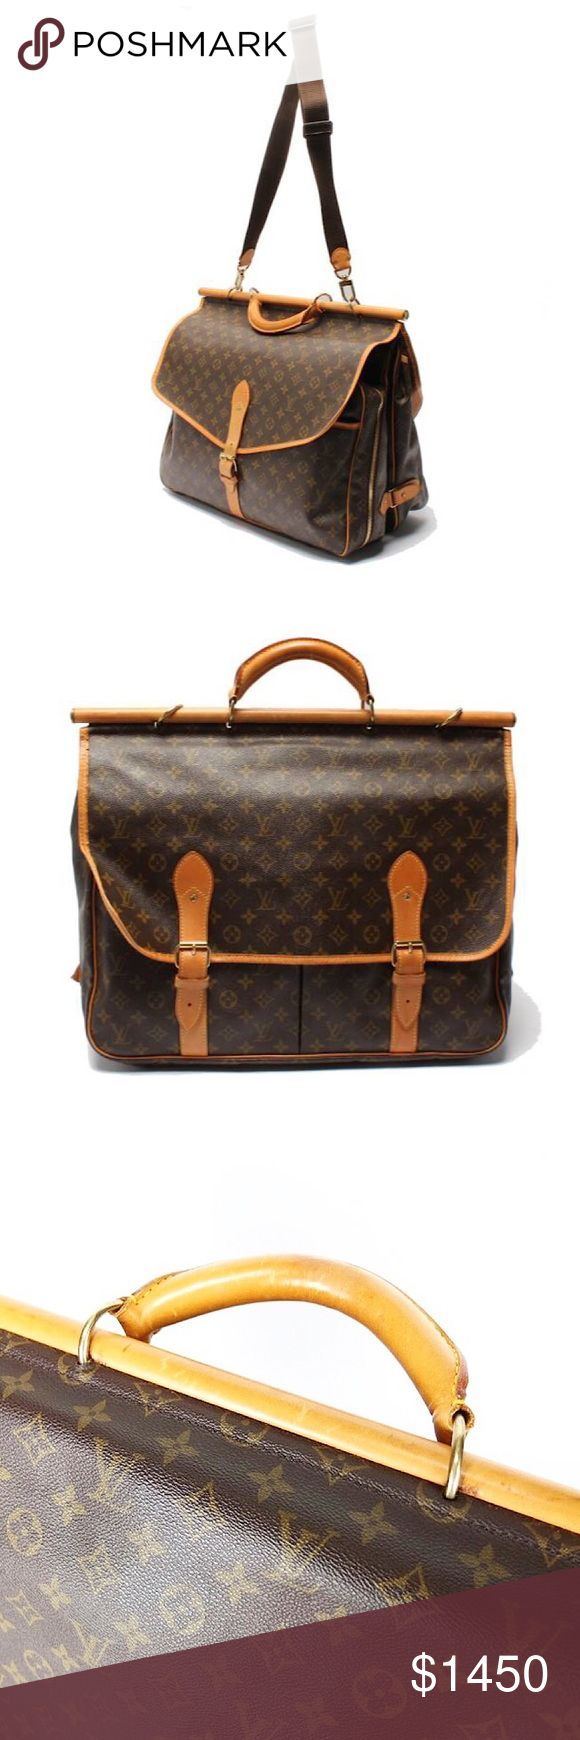 Authentic Vuitton Monogram Travel Hunting Bag Authentic Louis Vuitton Monogram Travel Hunting Bag Date Code: SP3077 Made in France Monogram canvas, natural cowhide trim -Golden brass pieces -Zip and buckle closure -Two compartments, one on each side -Rounded leather handle - Removable adjustable shoulder strap -Removable ID holder -Cabin size Louis Vuitton Bags Travel Bags